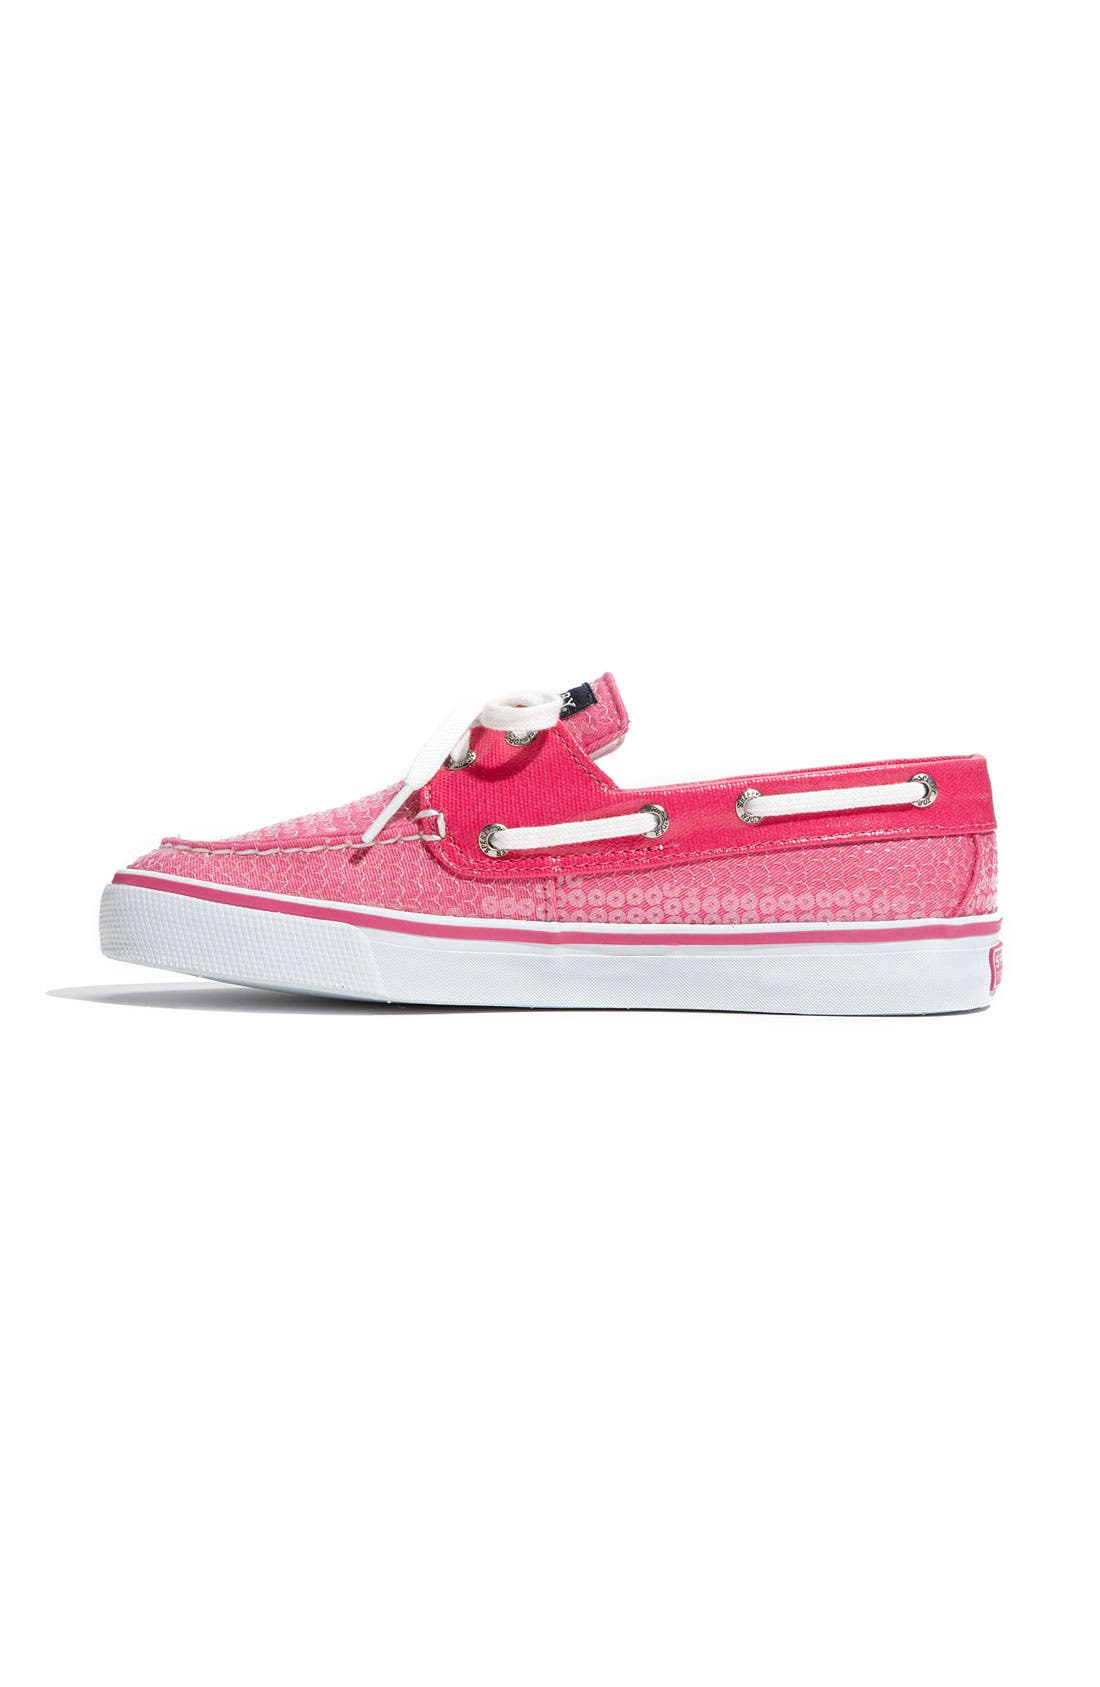 Top-Sider<sup>®</sup> 'Bahama' Sequined Boat Shoe,                             Alternate thumbnail 118, color,